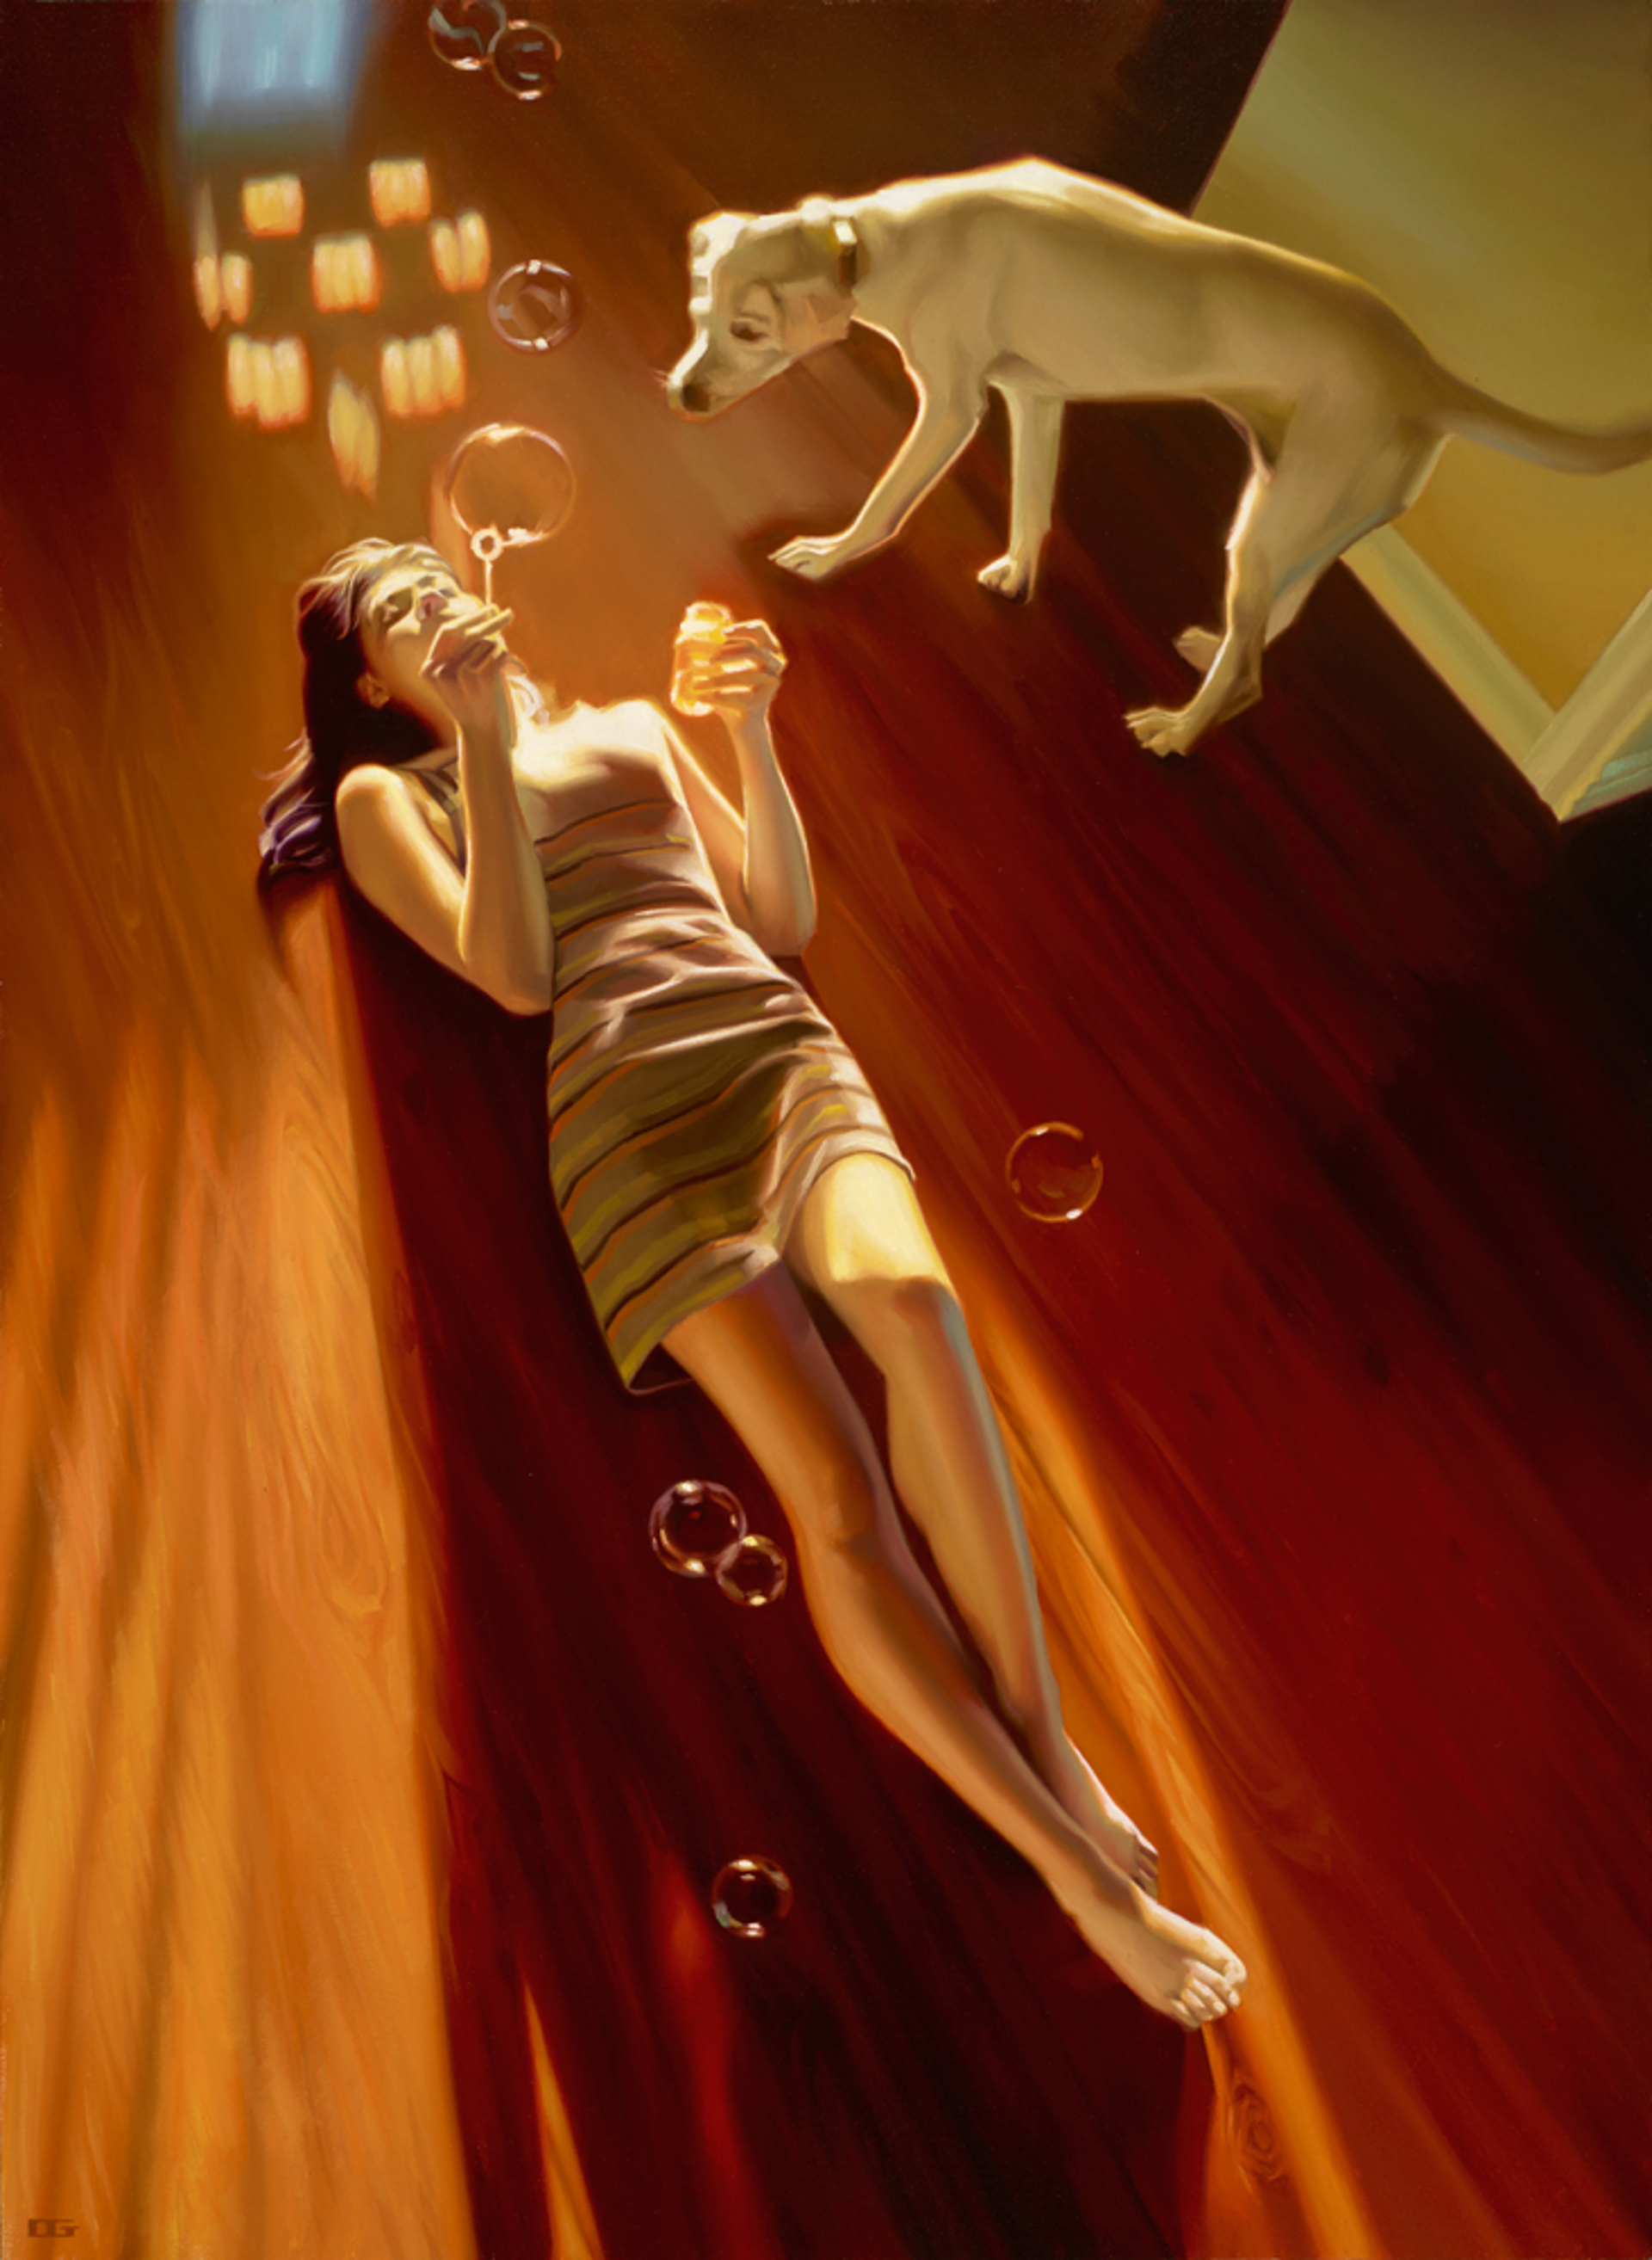 Little Worlds (S/N) by Carrie Graber